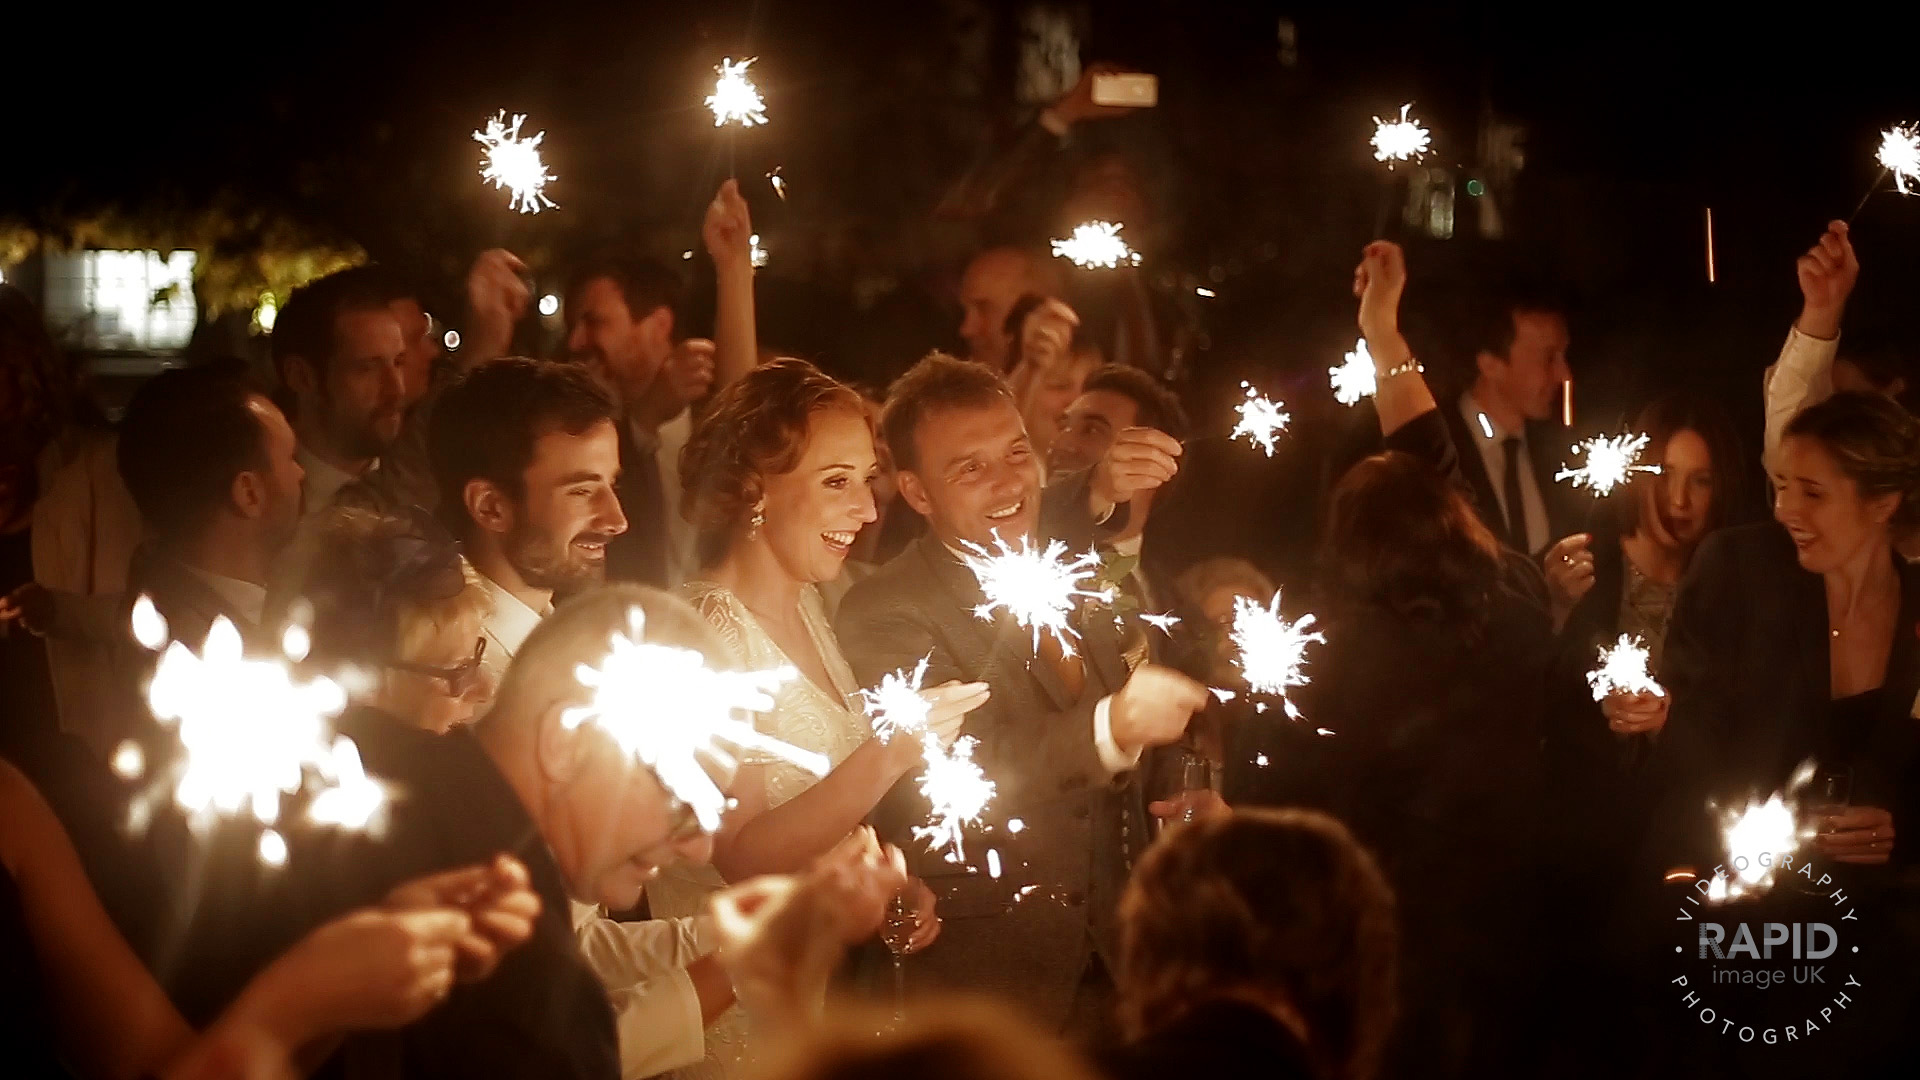 Bishop sparkler wedding video still.jpg